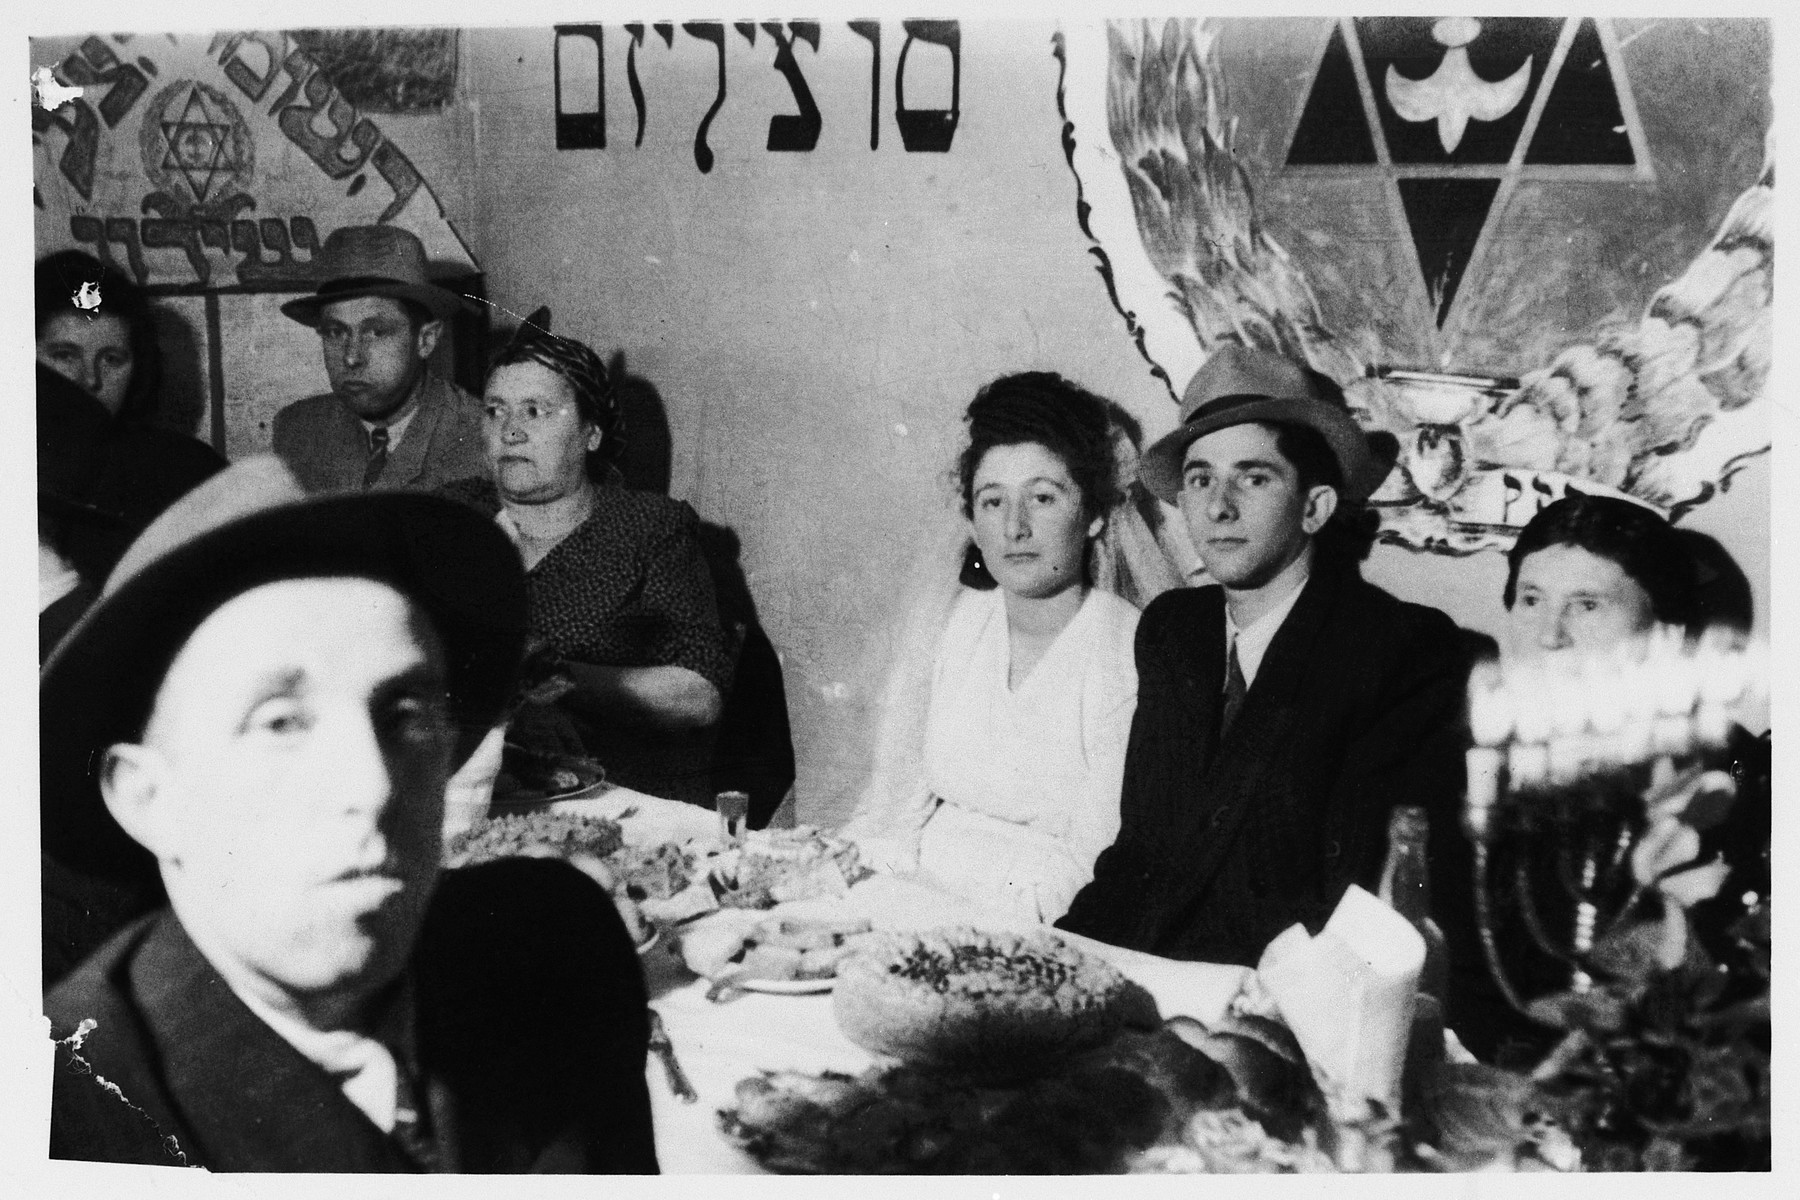 Wedding party of Yidl Weinstein and Gittl Zucker in the Windsheim displaced persons' camp.  A Hannuka menorah decorates the table.